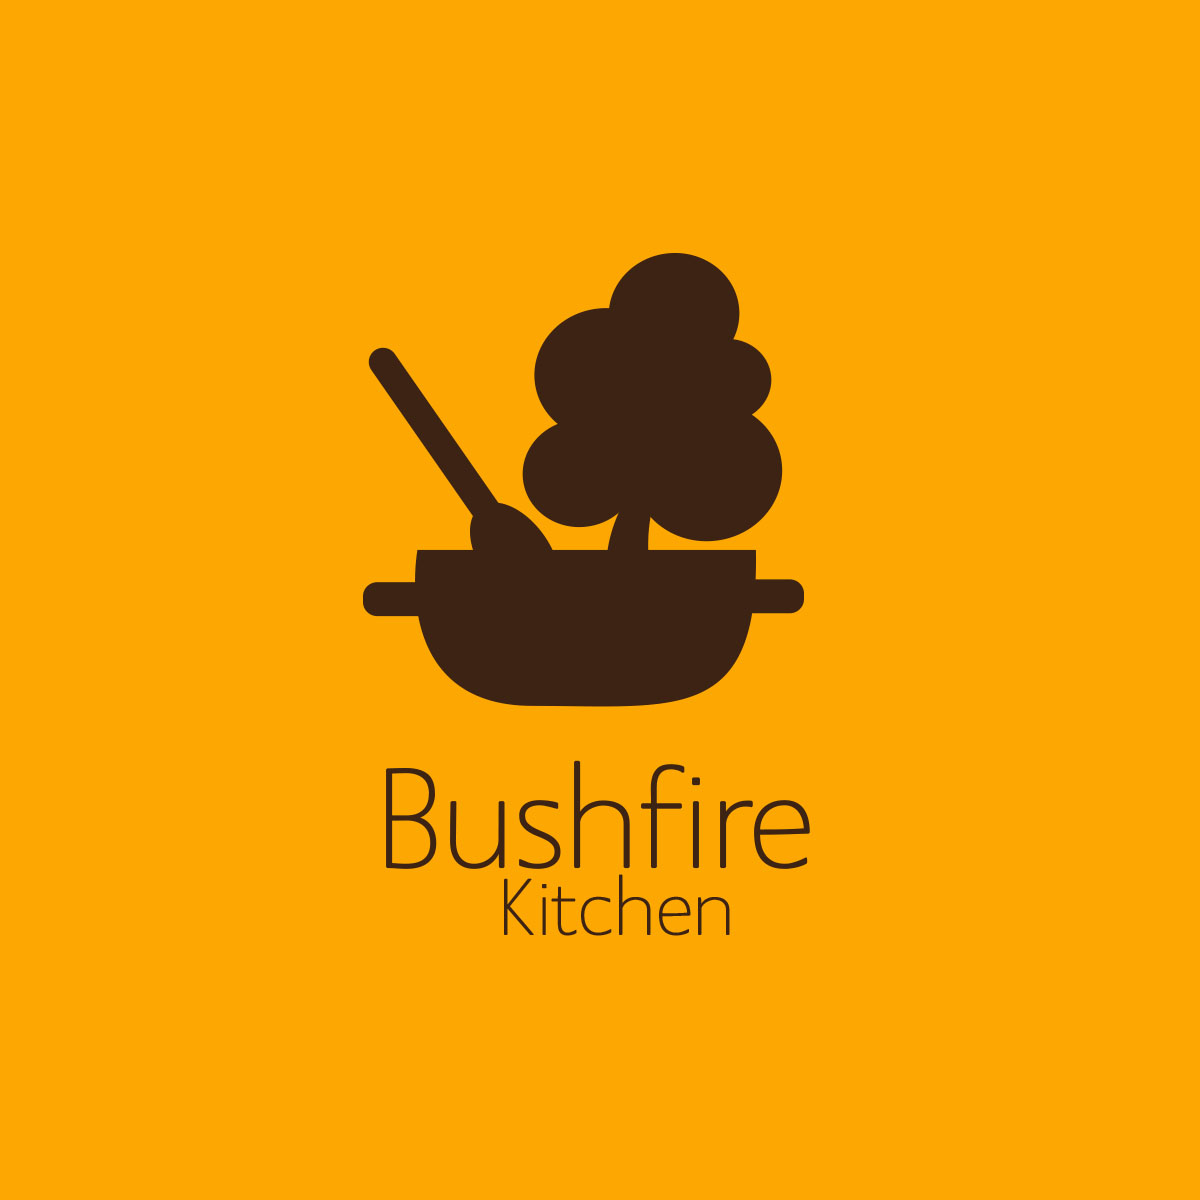 bushfire kitchen diner logo - Bushfire Kitchen